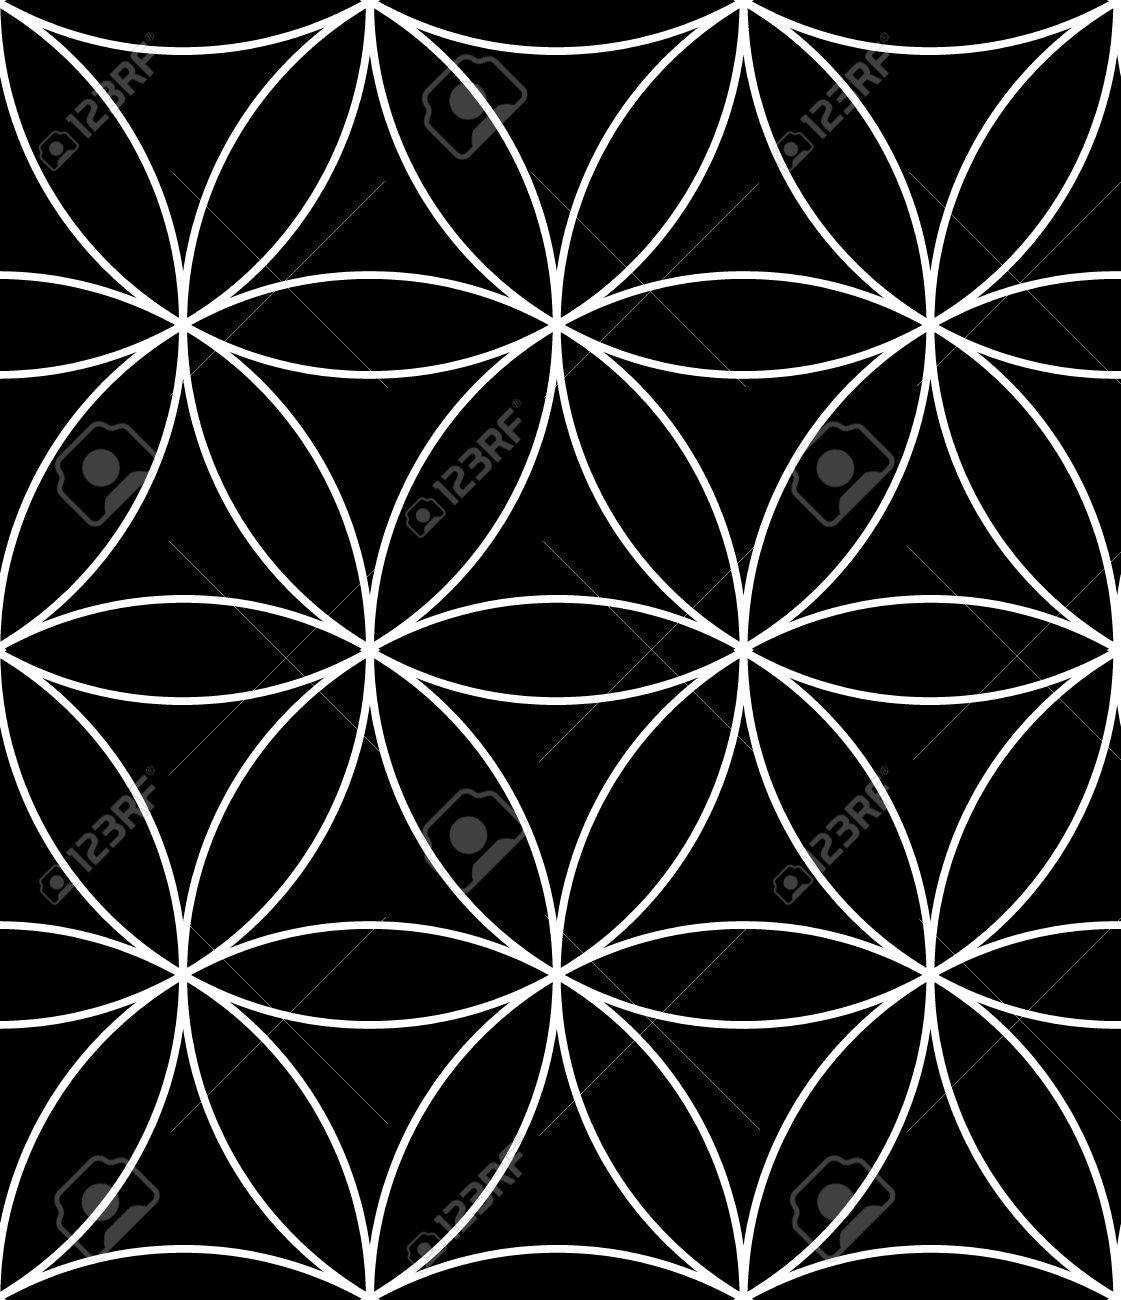 Black bed sheets pattern -  Black And White Textile Print Stylish Background Abstract Texture Monochrome Fashion Design Sacred Geometry Bed Sheets Or Pillow Pattern